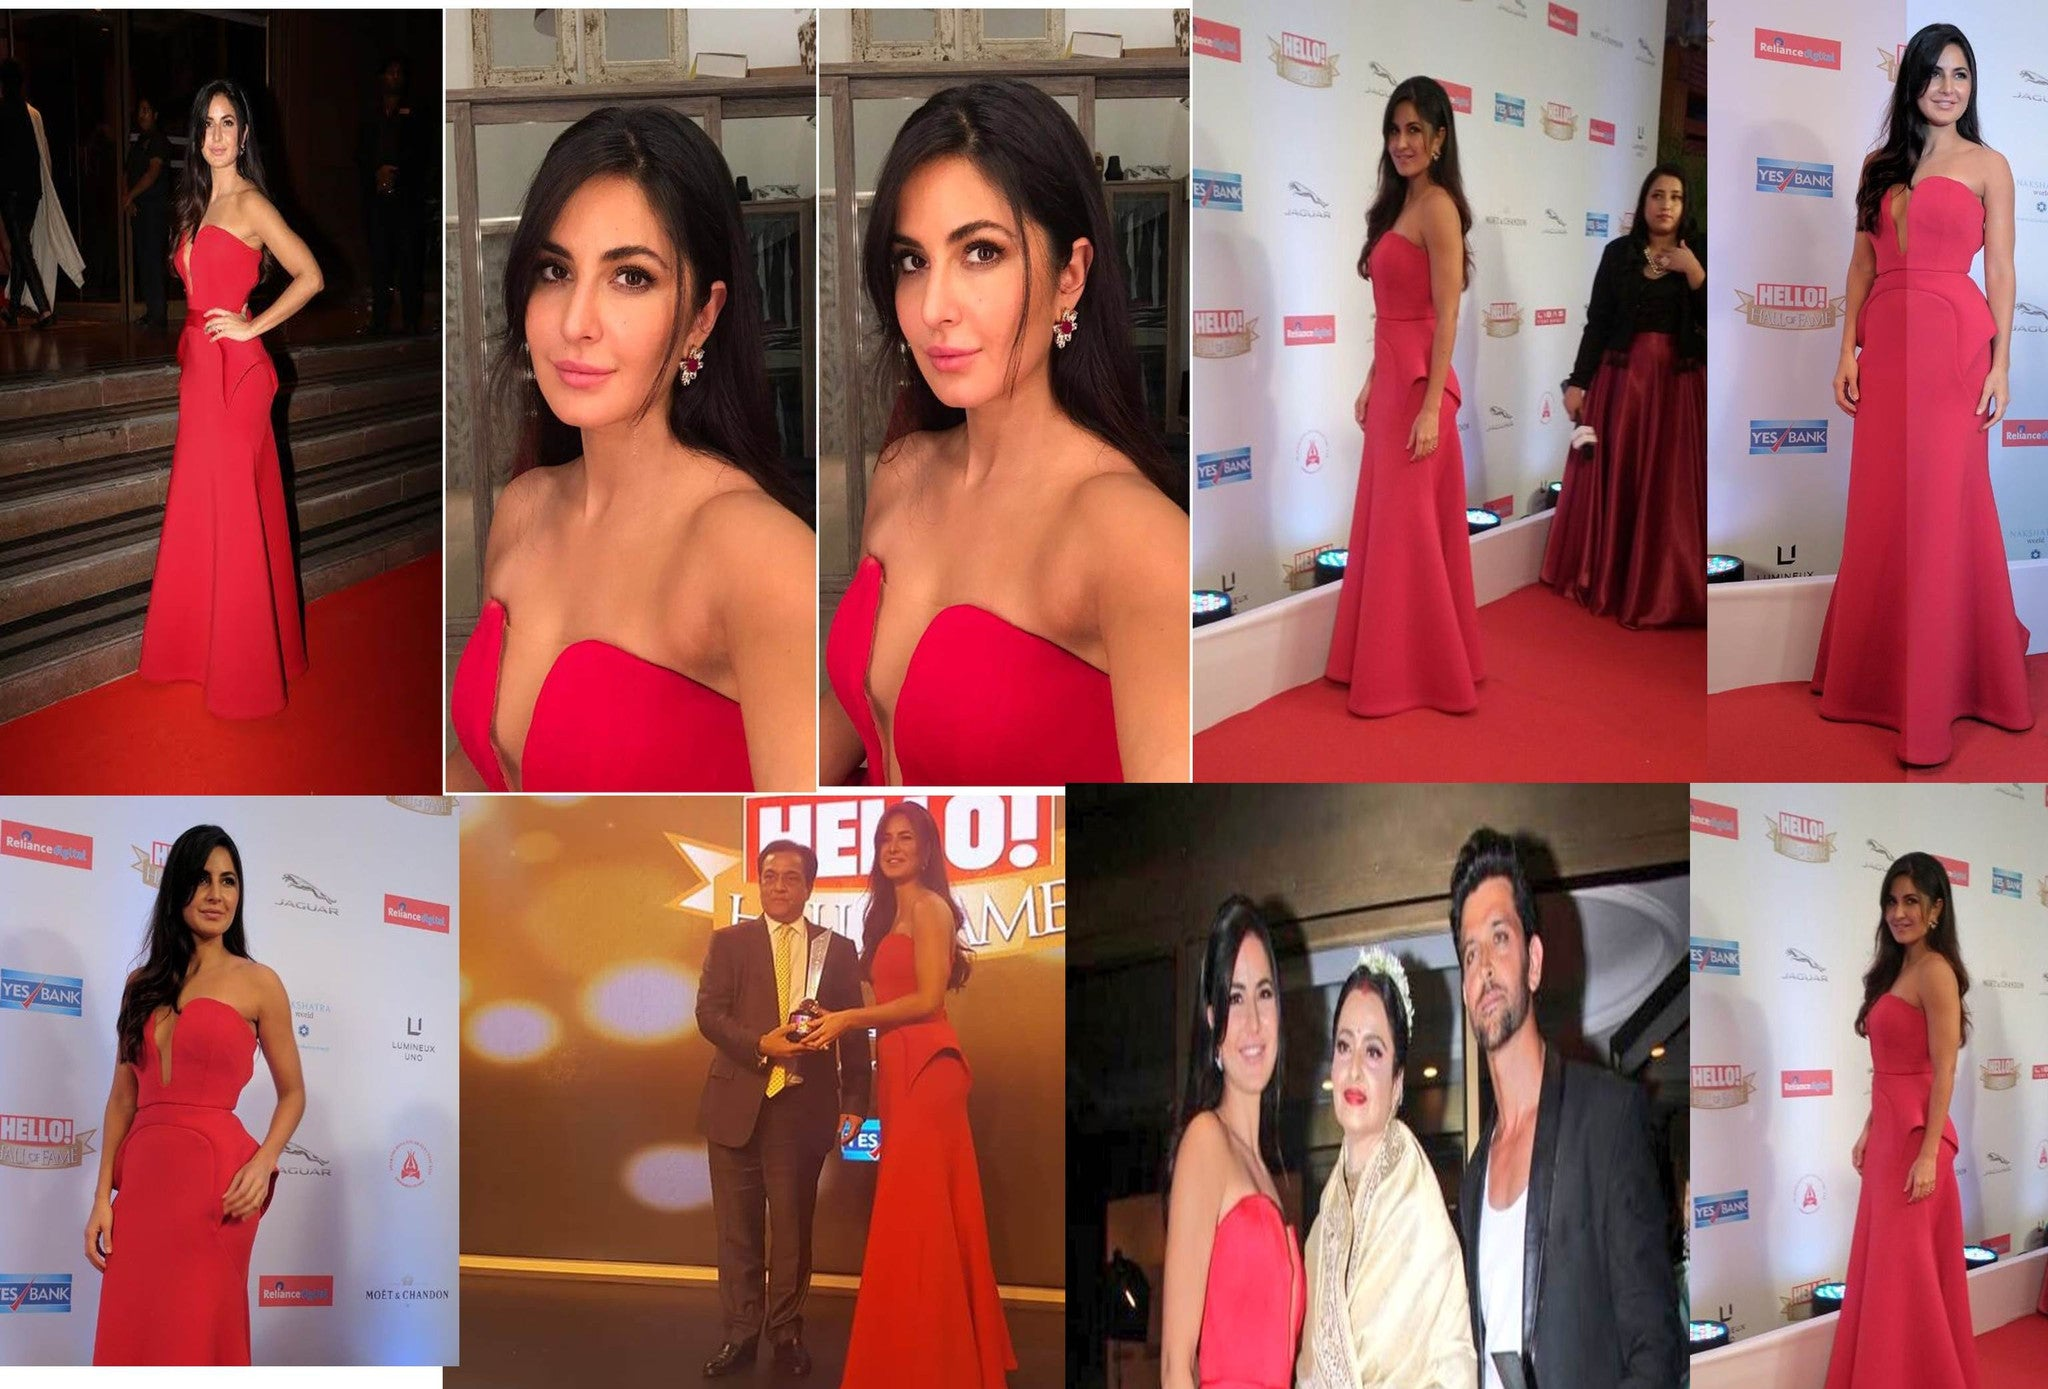 Gracing the red carpet was Katrina Kaif wearing a red Abu Jani Sandeep Khosla gown at Hello Fame Award